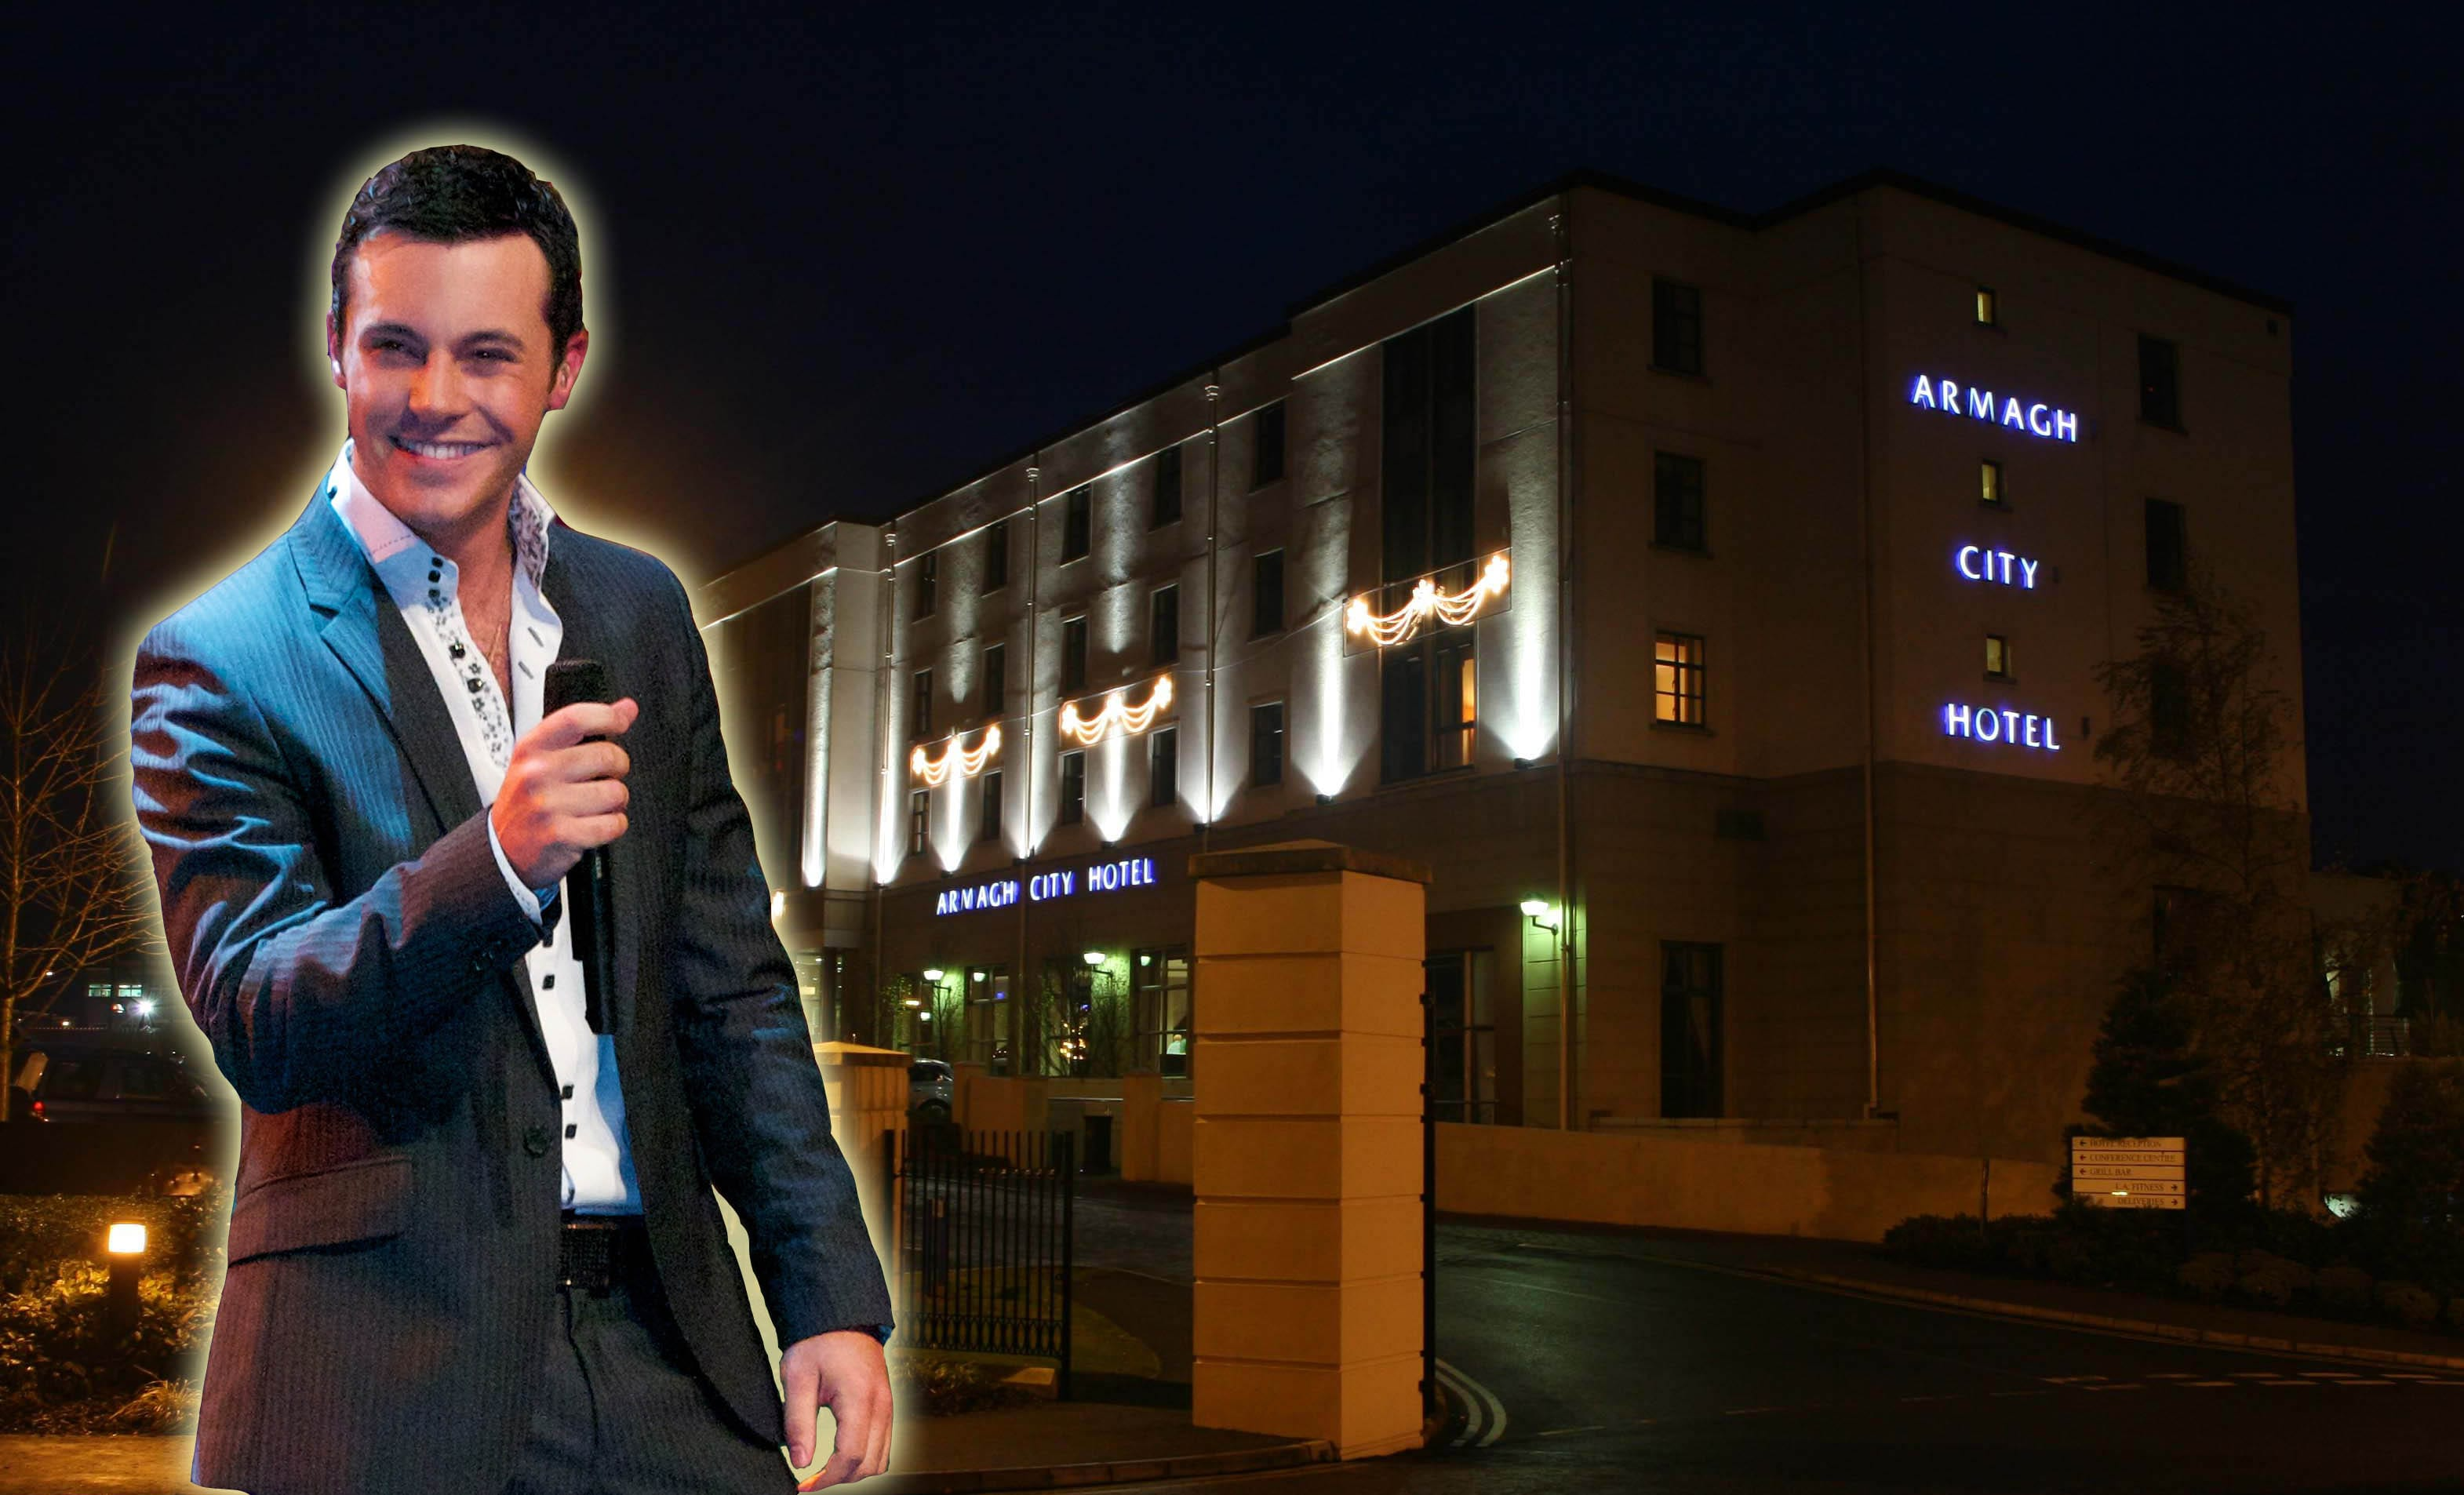 Nathan Carter is due to play in the Armagh City Hotel on March 26